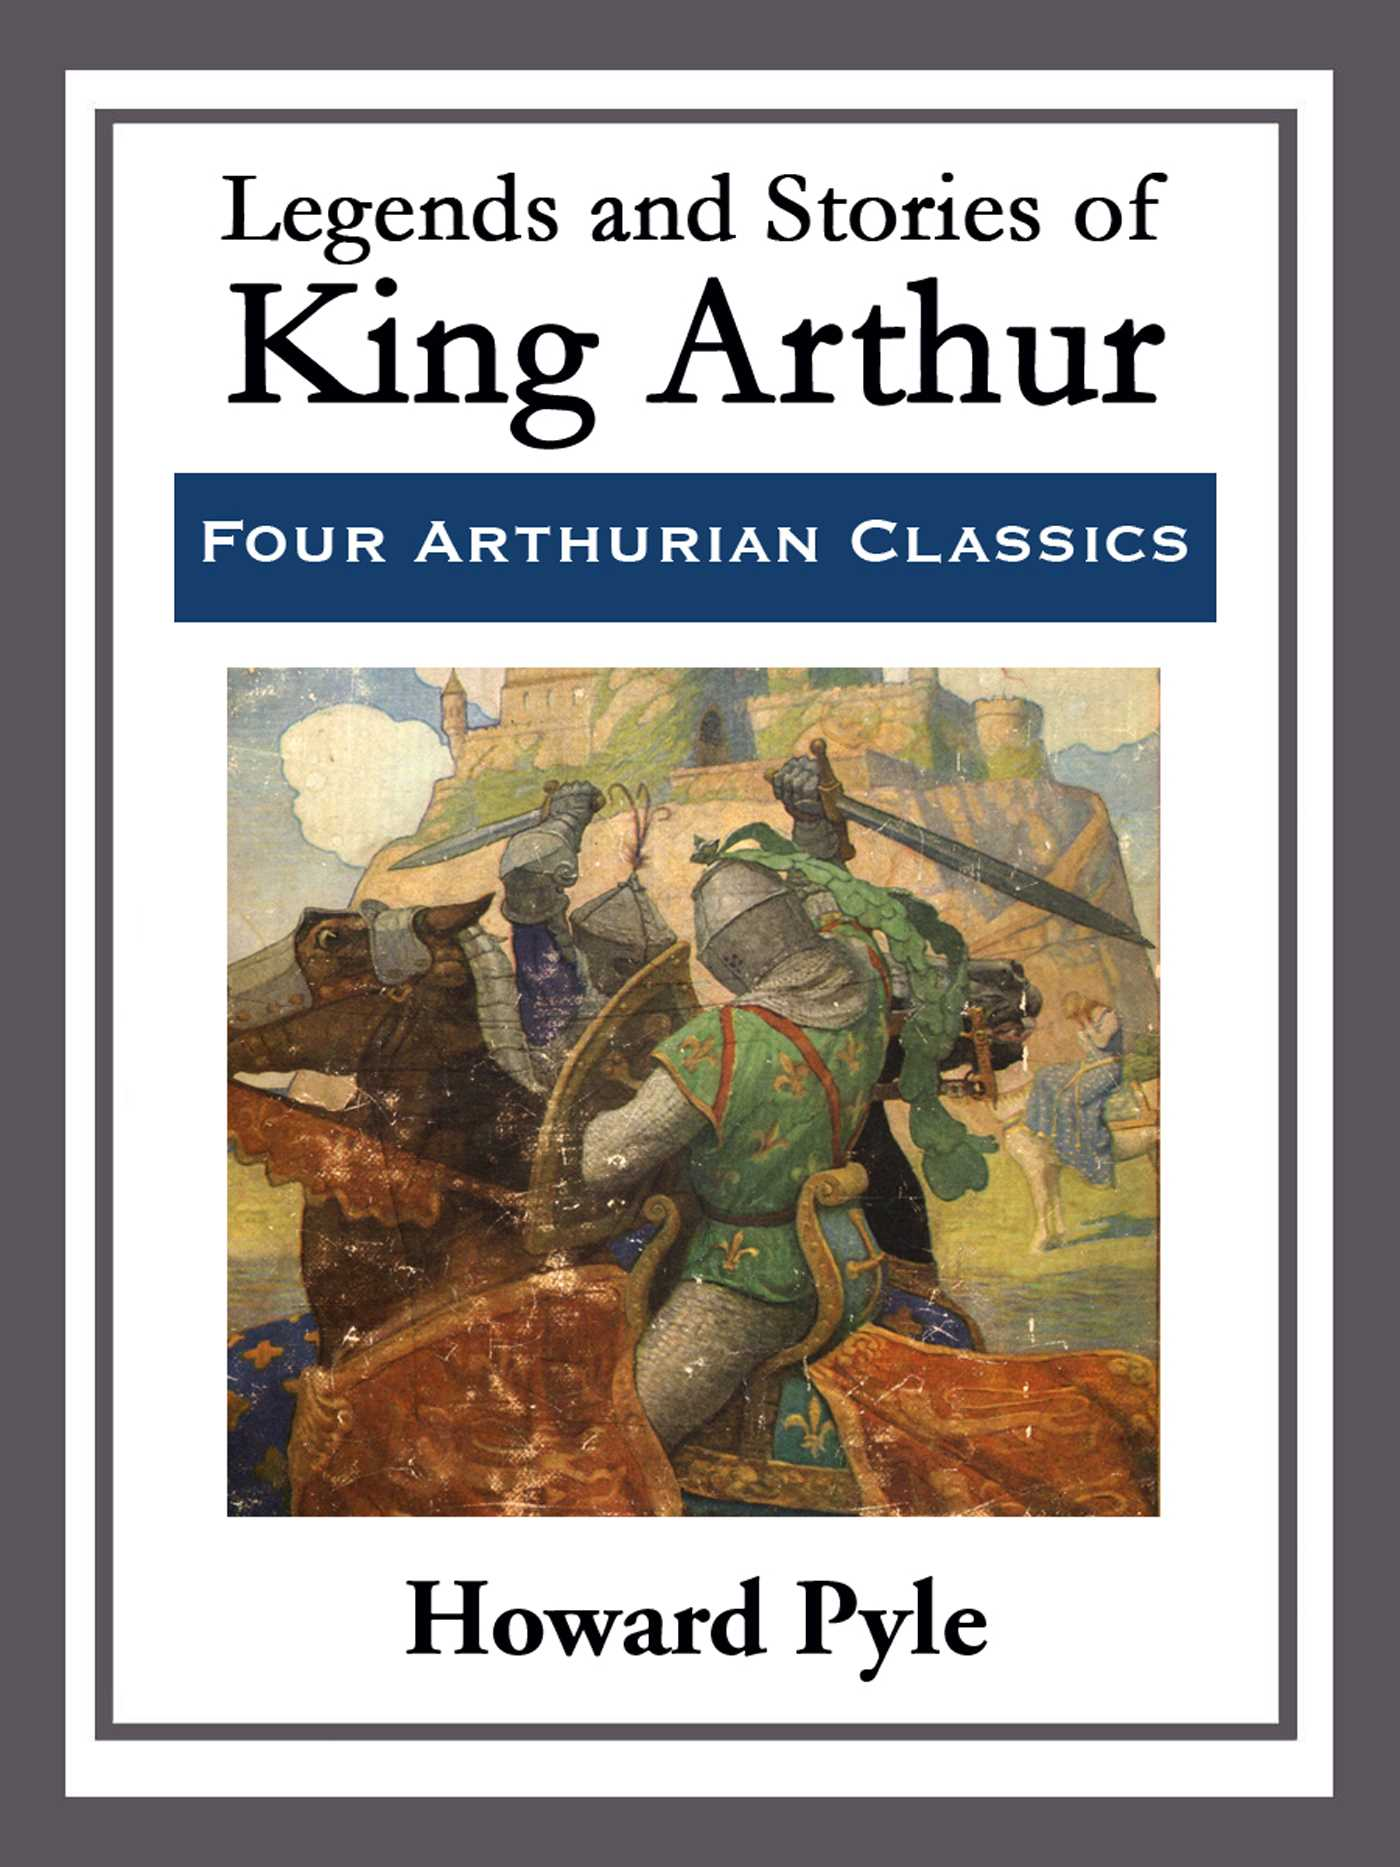 Legends and stories of king arthur 9781681465258 hr